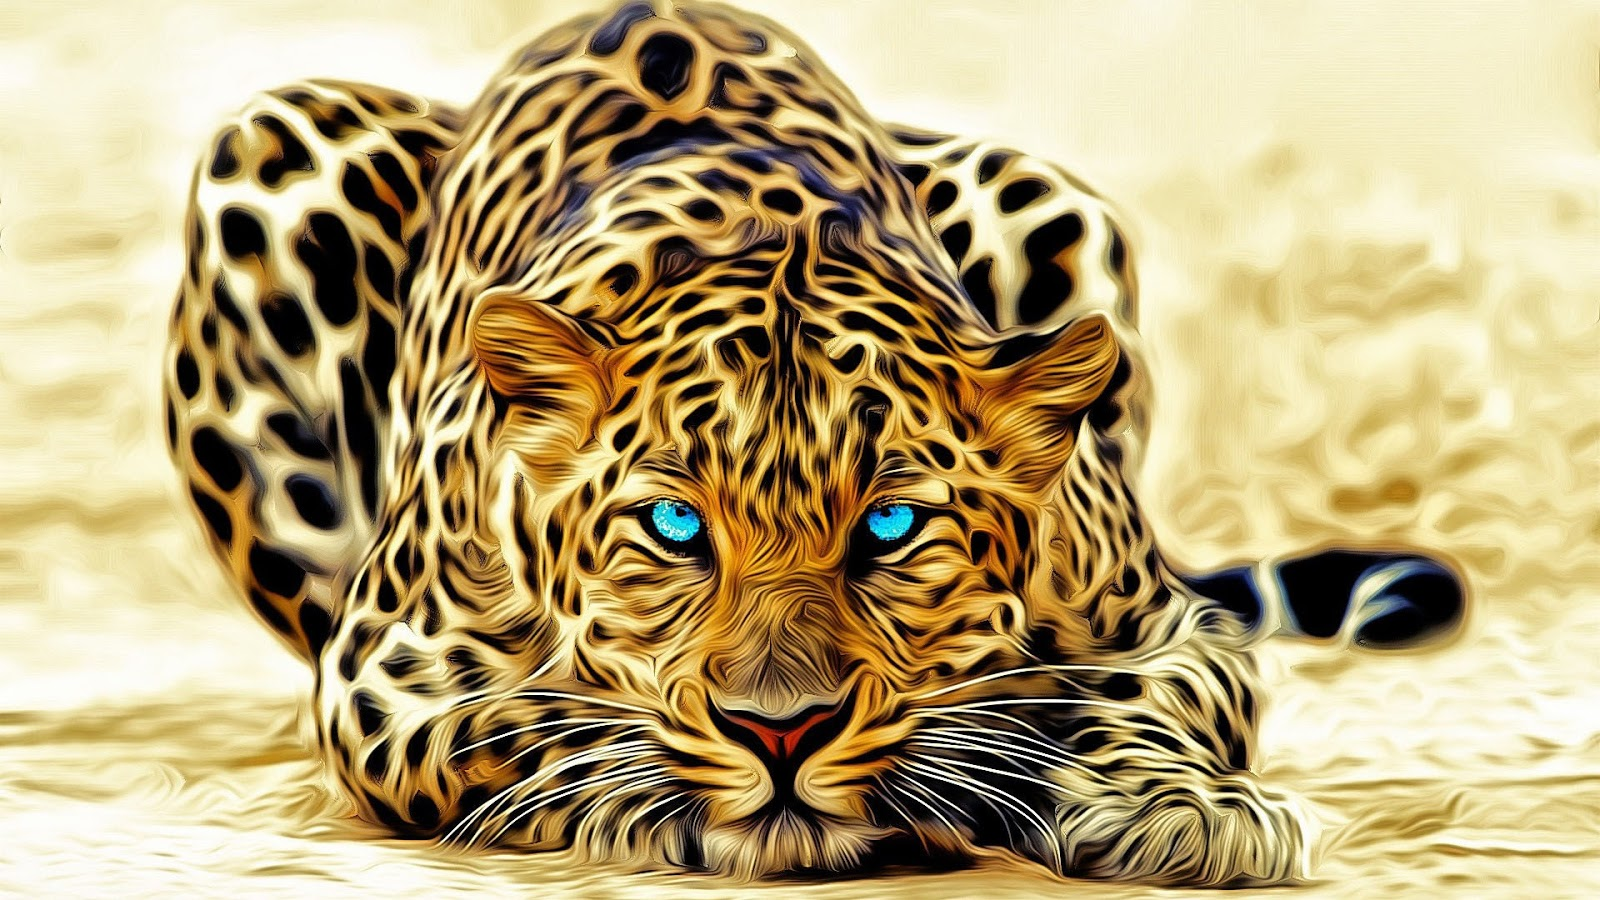 Fantasy wildlife abstract animal creative design art hd - Animal 1920x1080 ...